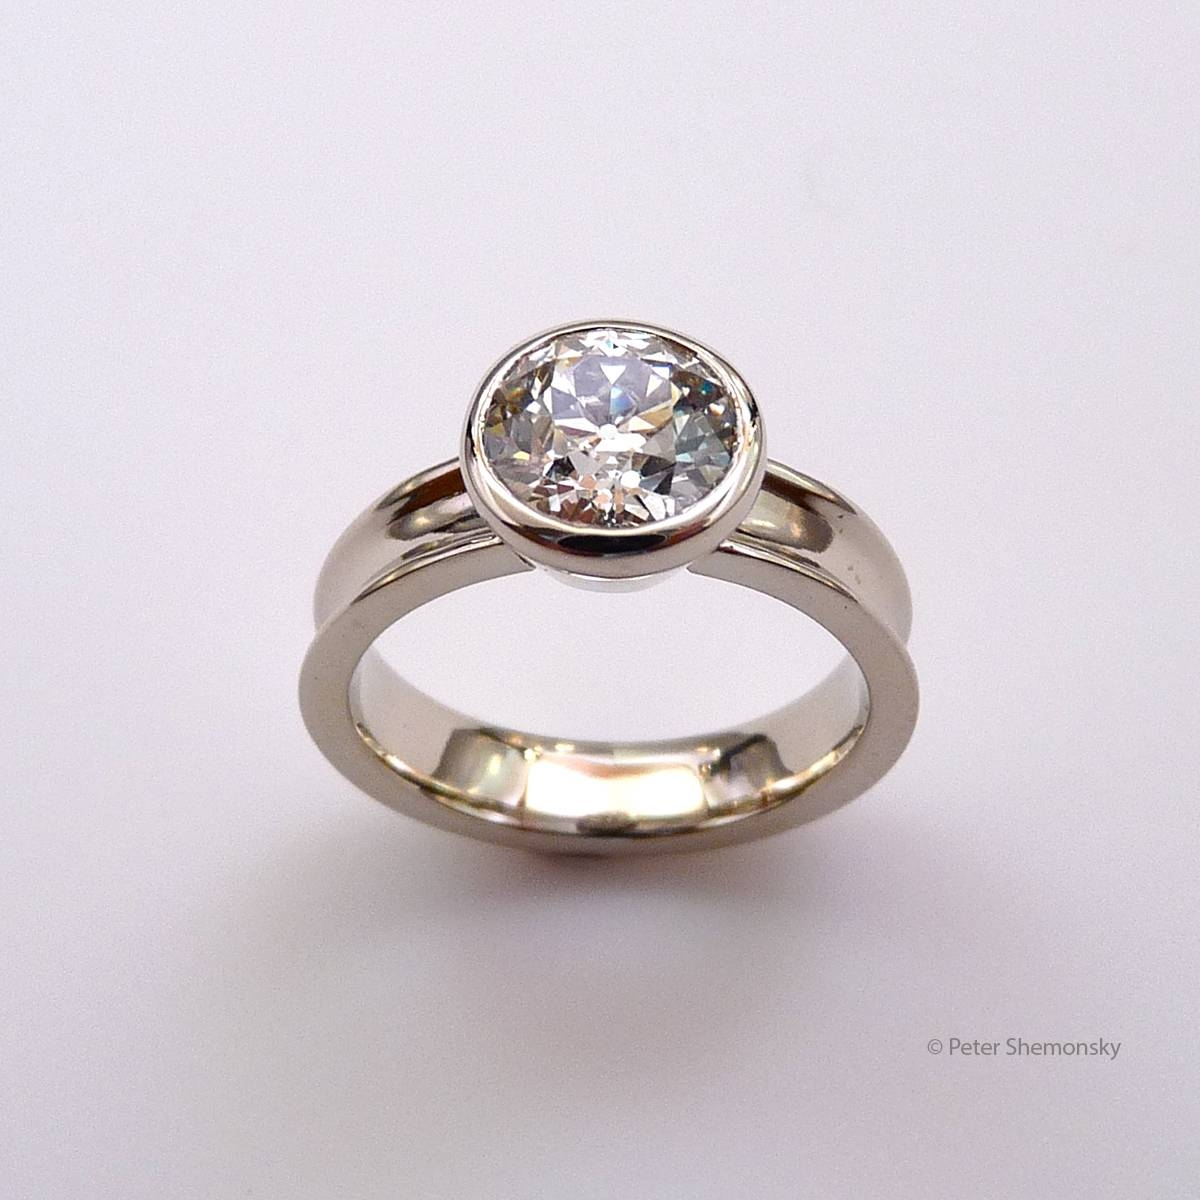 Diamond And Eighteen Karat White Gold Engagement Ring | Peter Jon With Regard To Flat Engagement Ring Settings (Gallery 1 of 15)